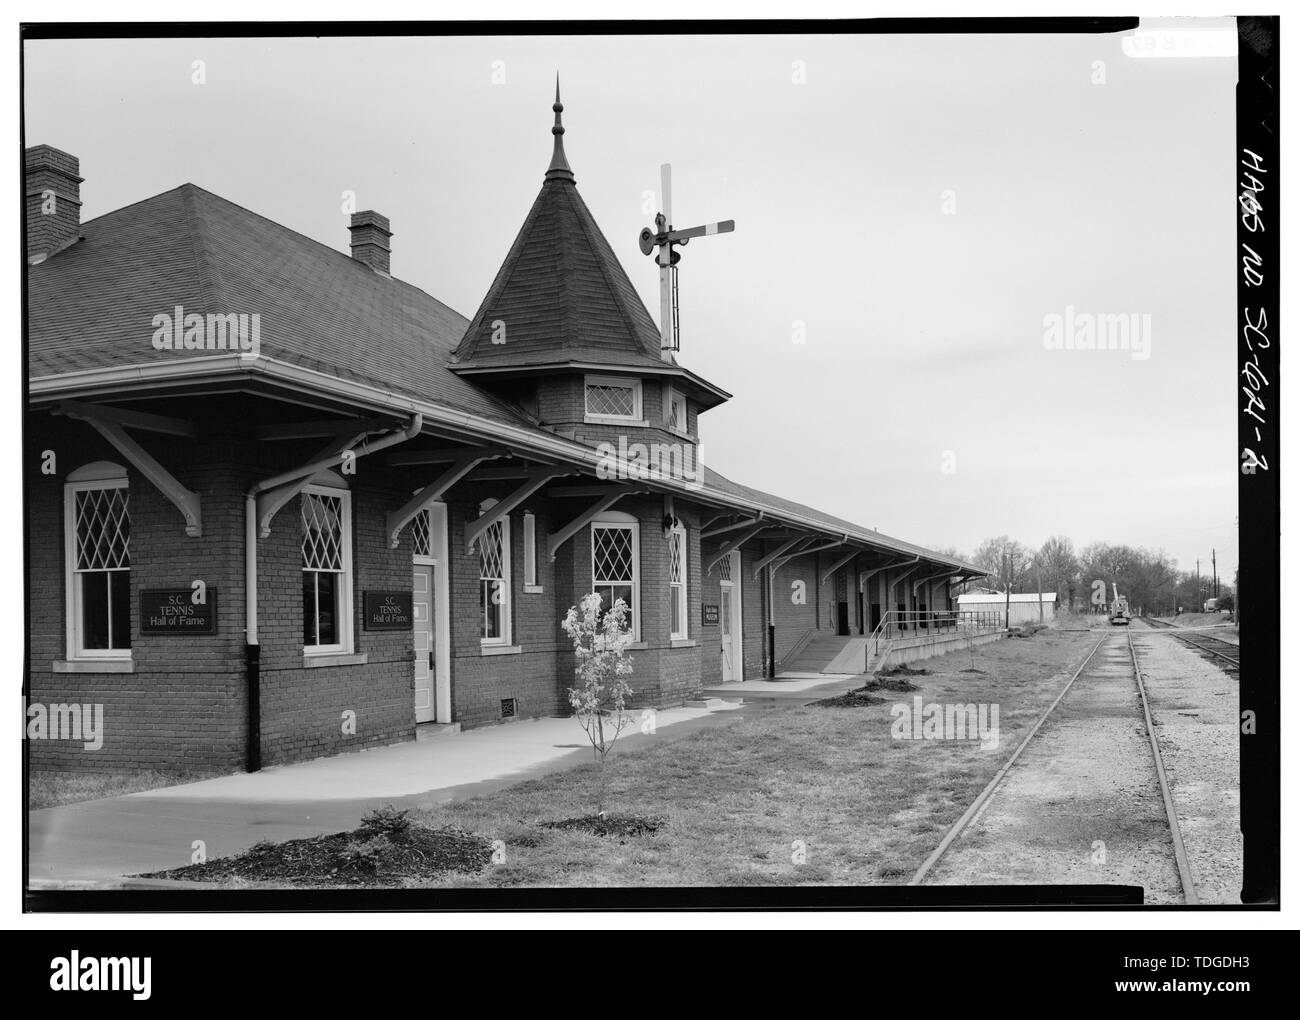 NORTHEAST (FRONT), LOOKING WEST, CLOSER VIEW - Southern Railway Combined Depot, West side of Belton Public Square, Belton, Anderson County, SC; Cary, Brian, transmitter - Stock Image